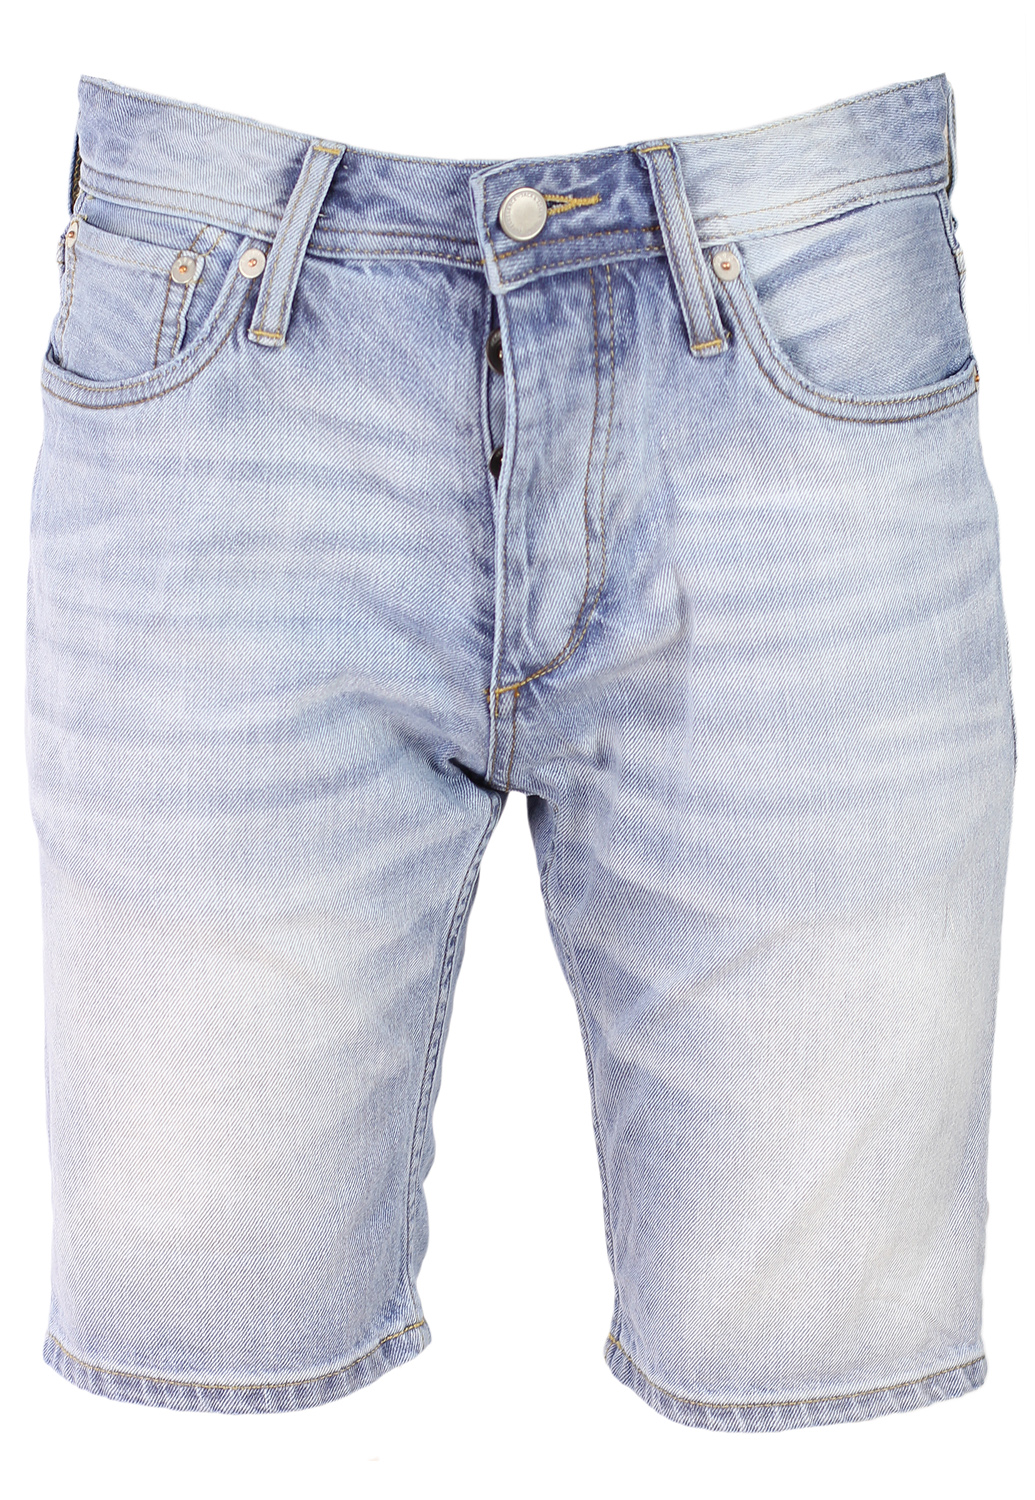 Pantaloni Scurti Jack And Jones Xerie Light Blue